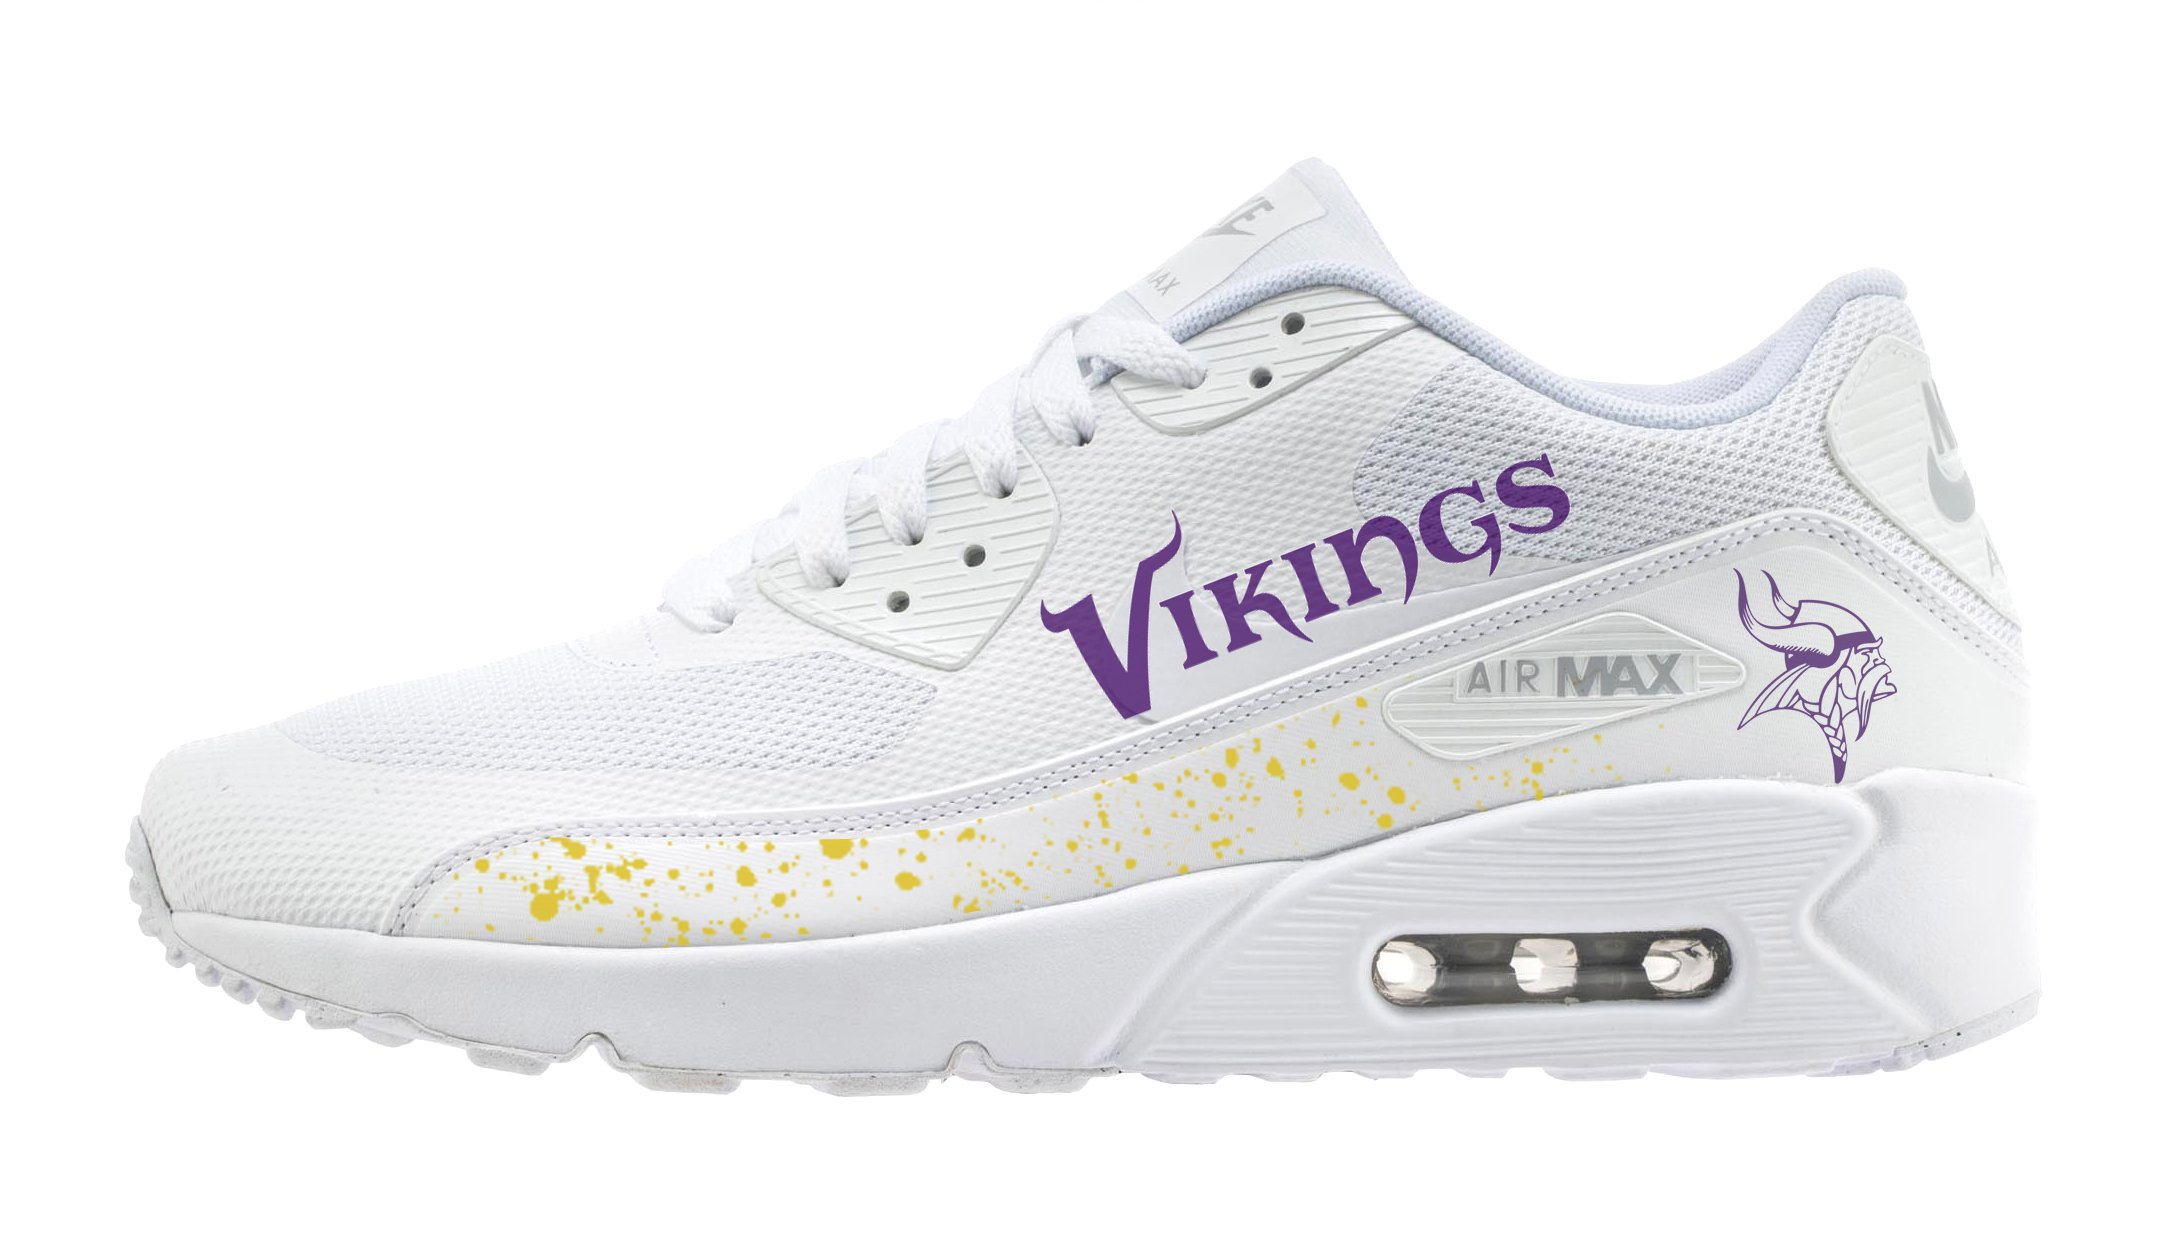 promo code af078 24659 Authentic Nike Air Max 90 sneakers featuring the Minnesota Vikings logos  print design. Request a Custom Order and have something made just for you.